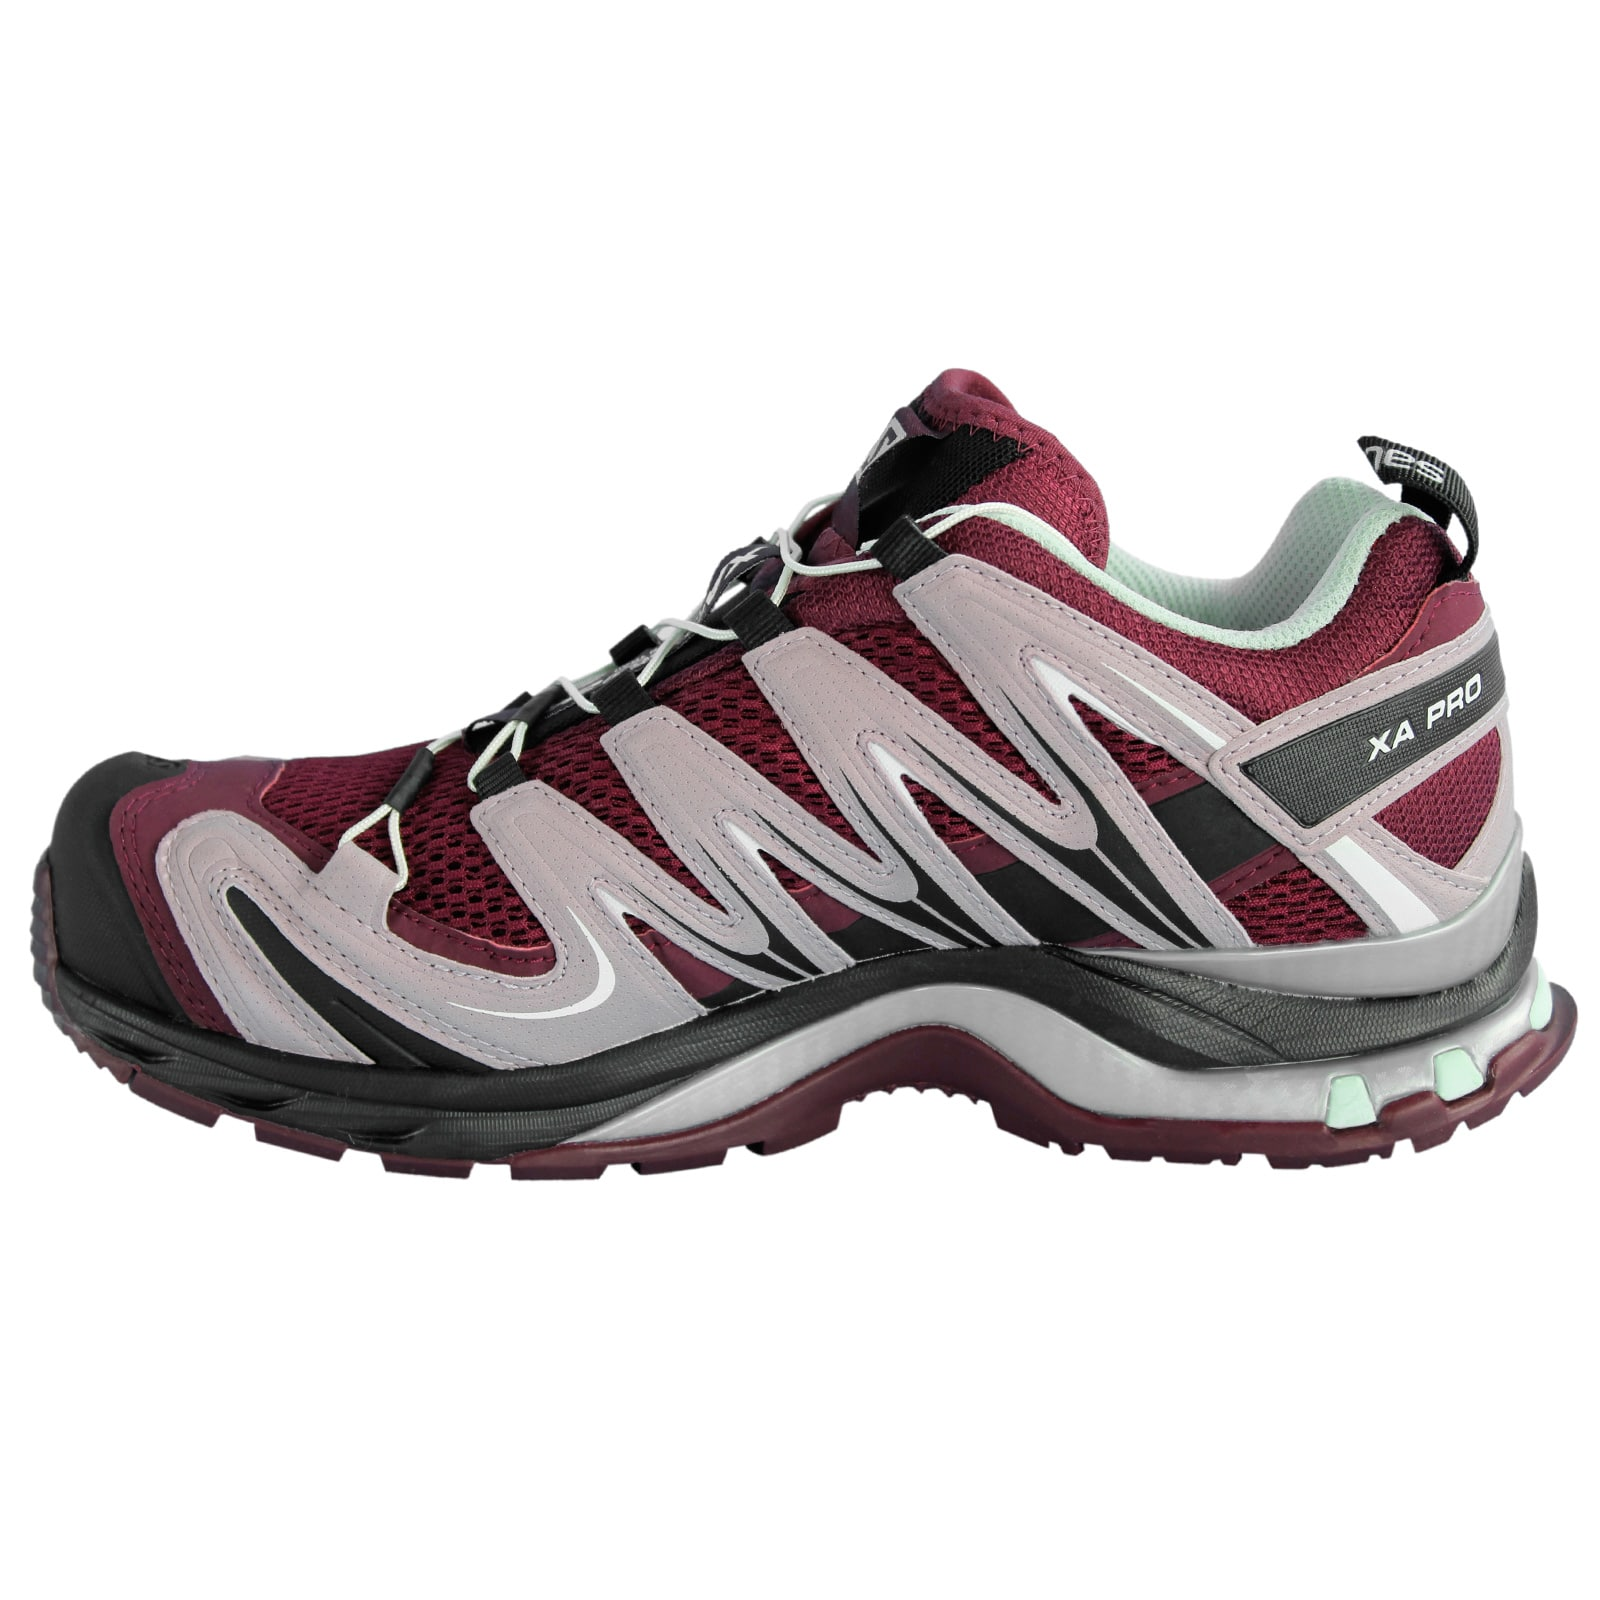 salomon xa pro 3d lady bordeaux trail running shoes,salomon